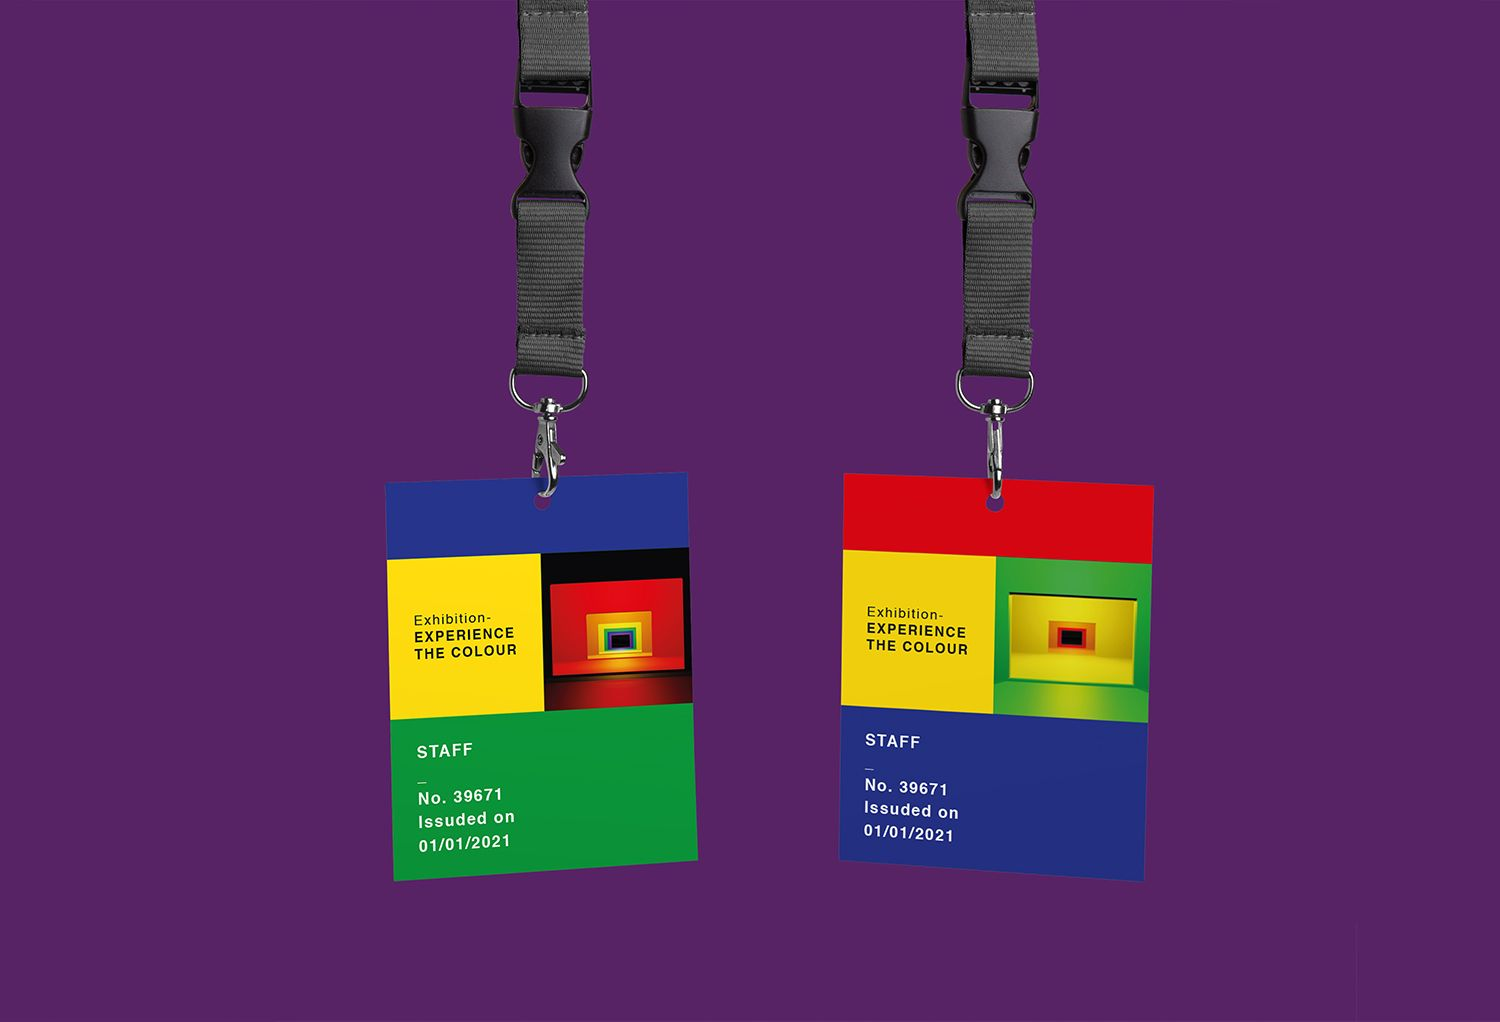 Experience The Colour Exhibition Staff Tickets